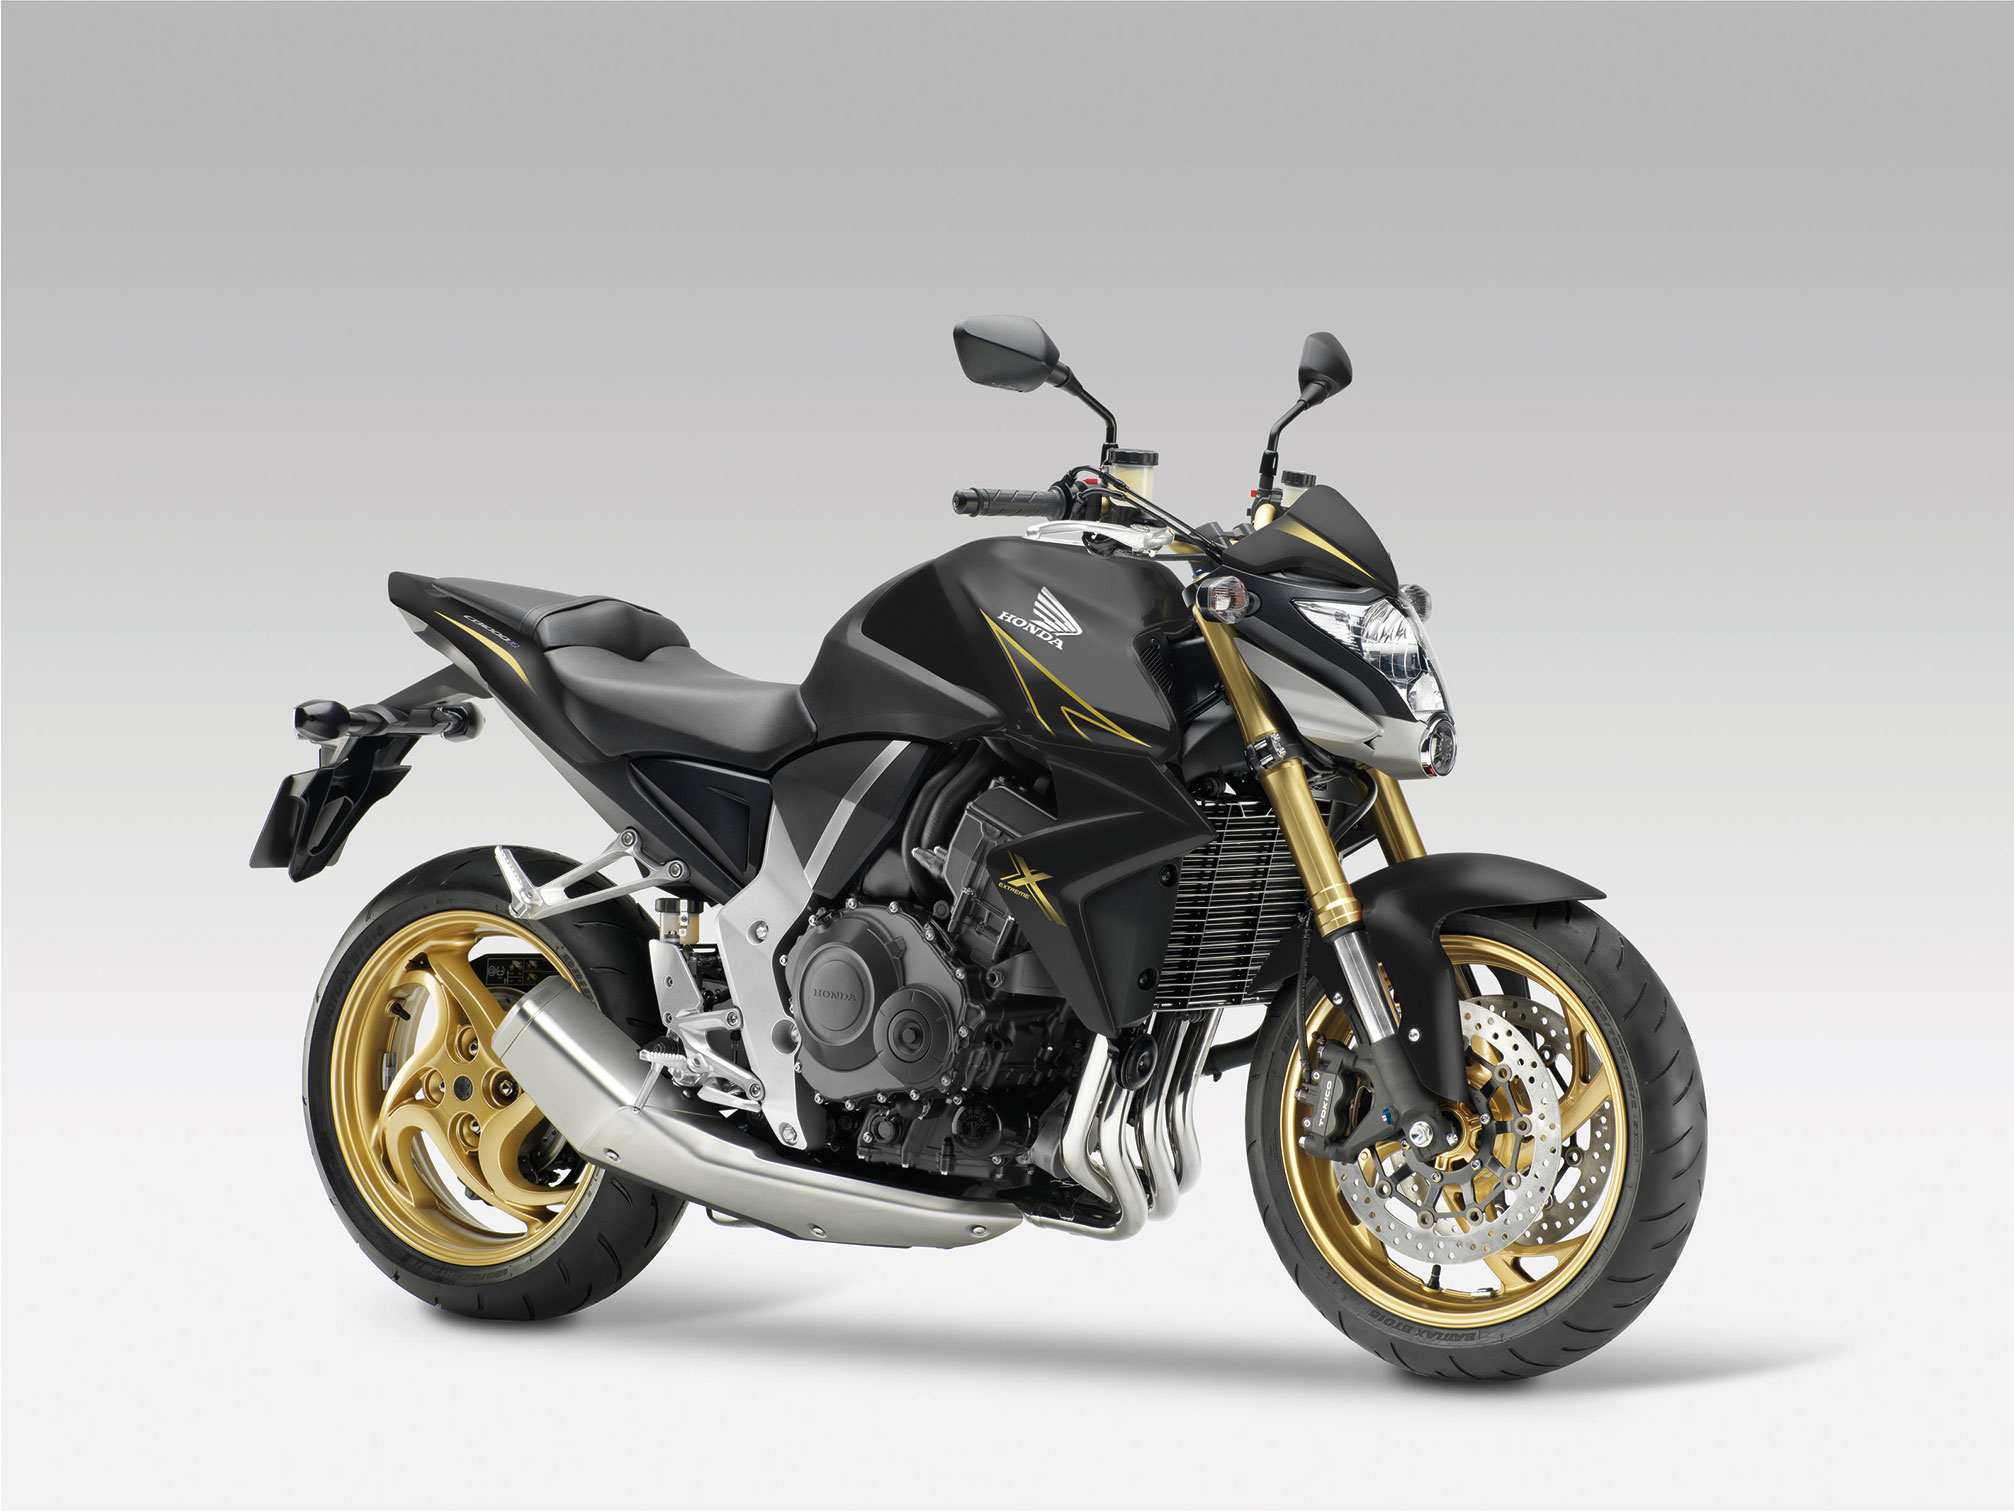 honda cb1000r specs 2013 autoevolution. Black Bedroom Furniture Sets. Home Design Ideas